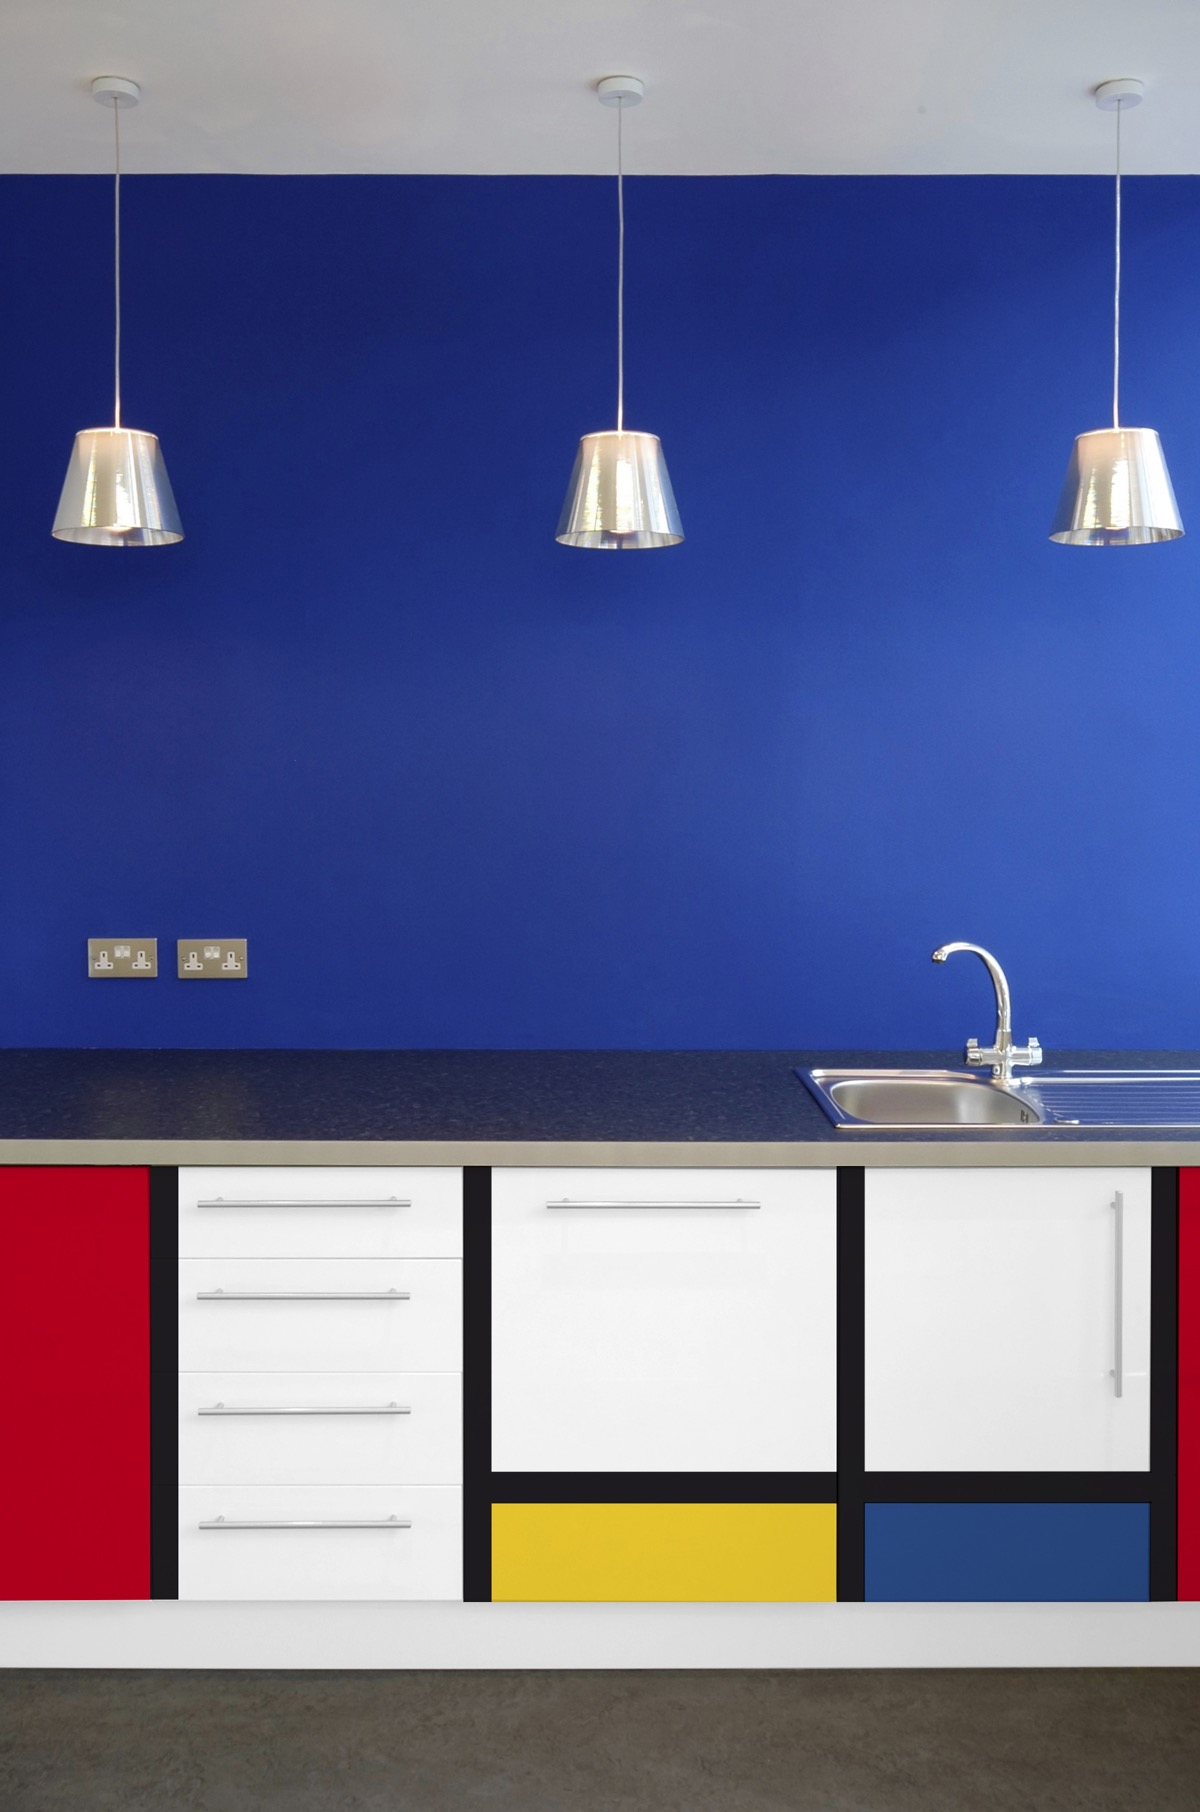 Piet Mondrian Inspired Interior Design To Give Your Home The De Stijl Flair images 40